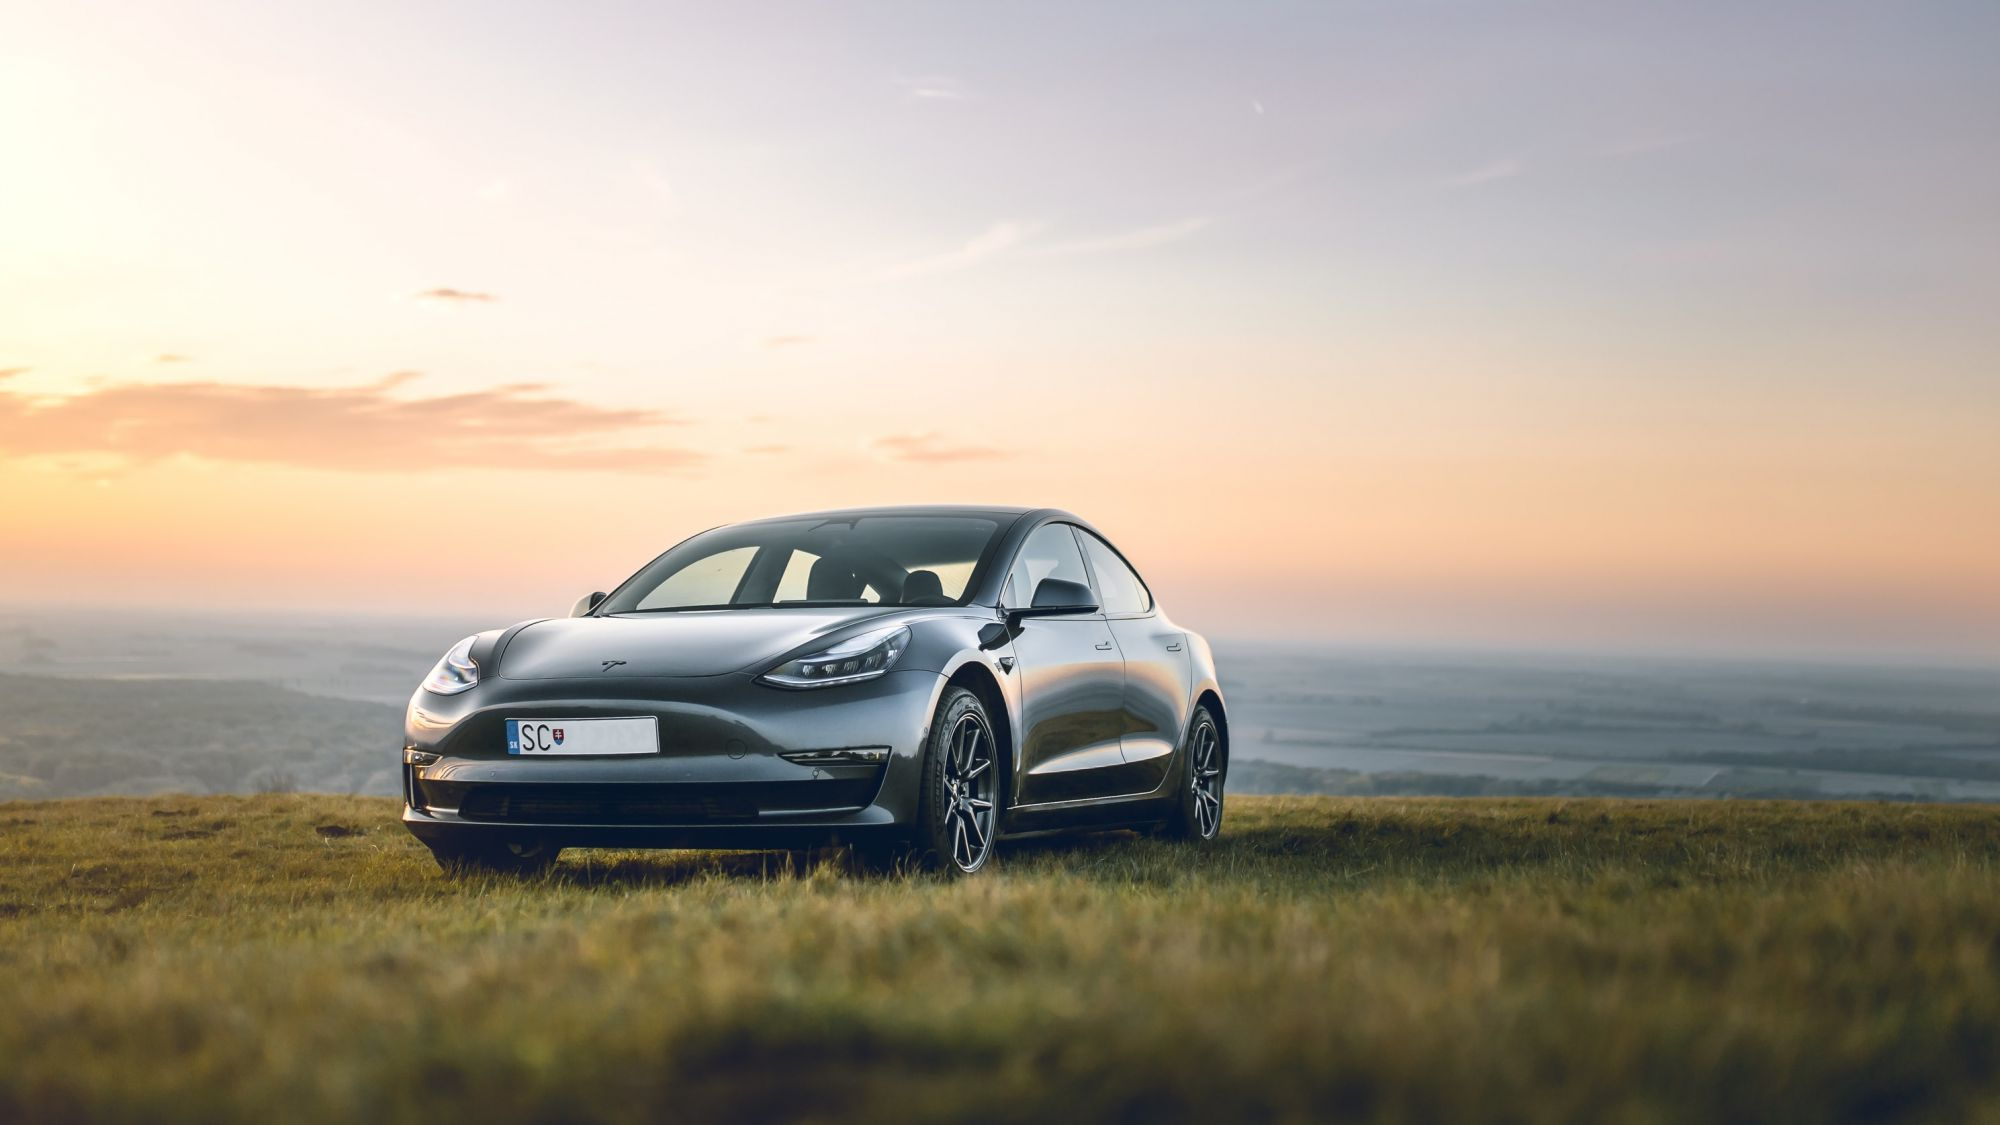 TESLA: Electric Car King Is Going Mainstream This 2021